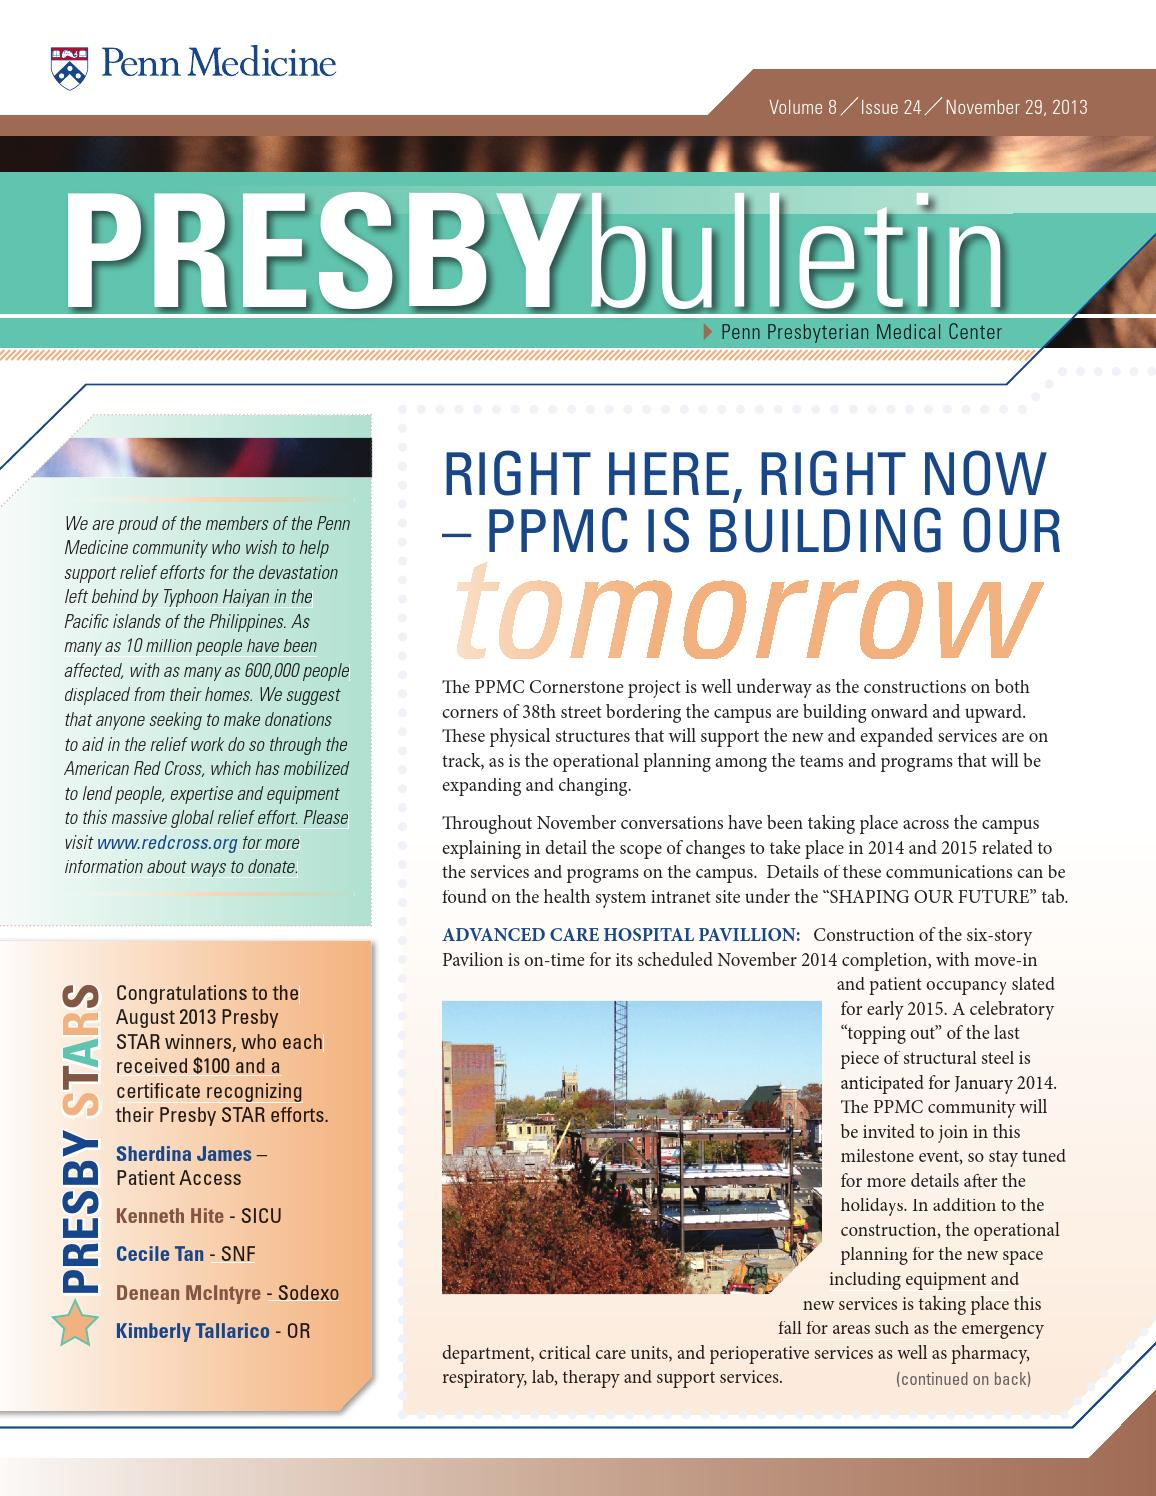 Presbybulletin -- November 29 by Penn Medicine - issuu